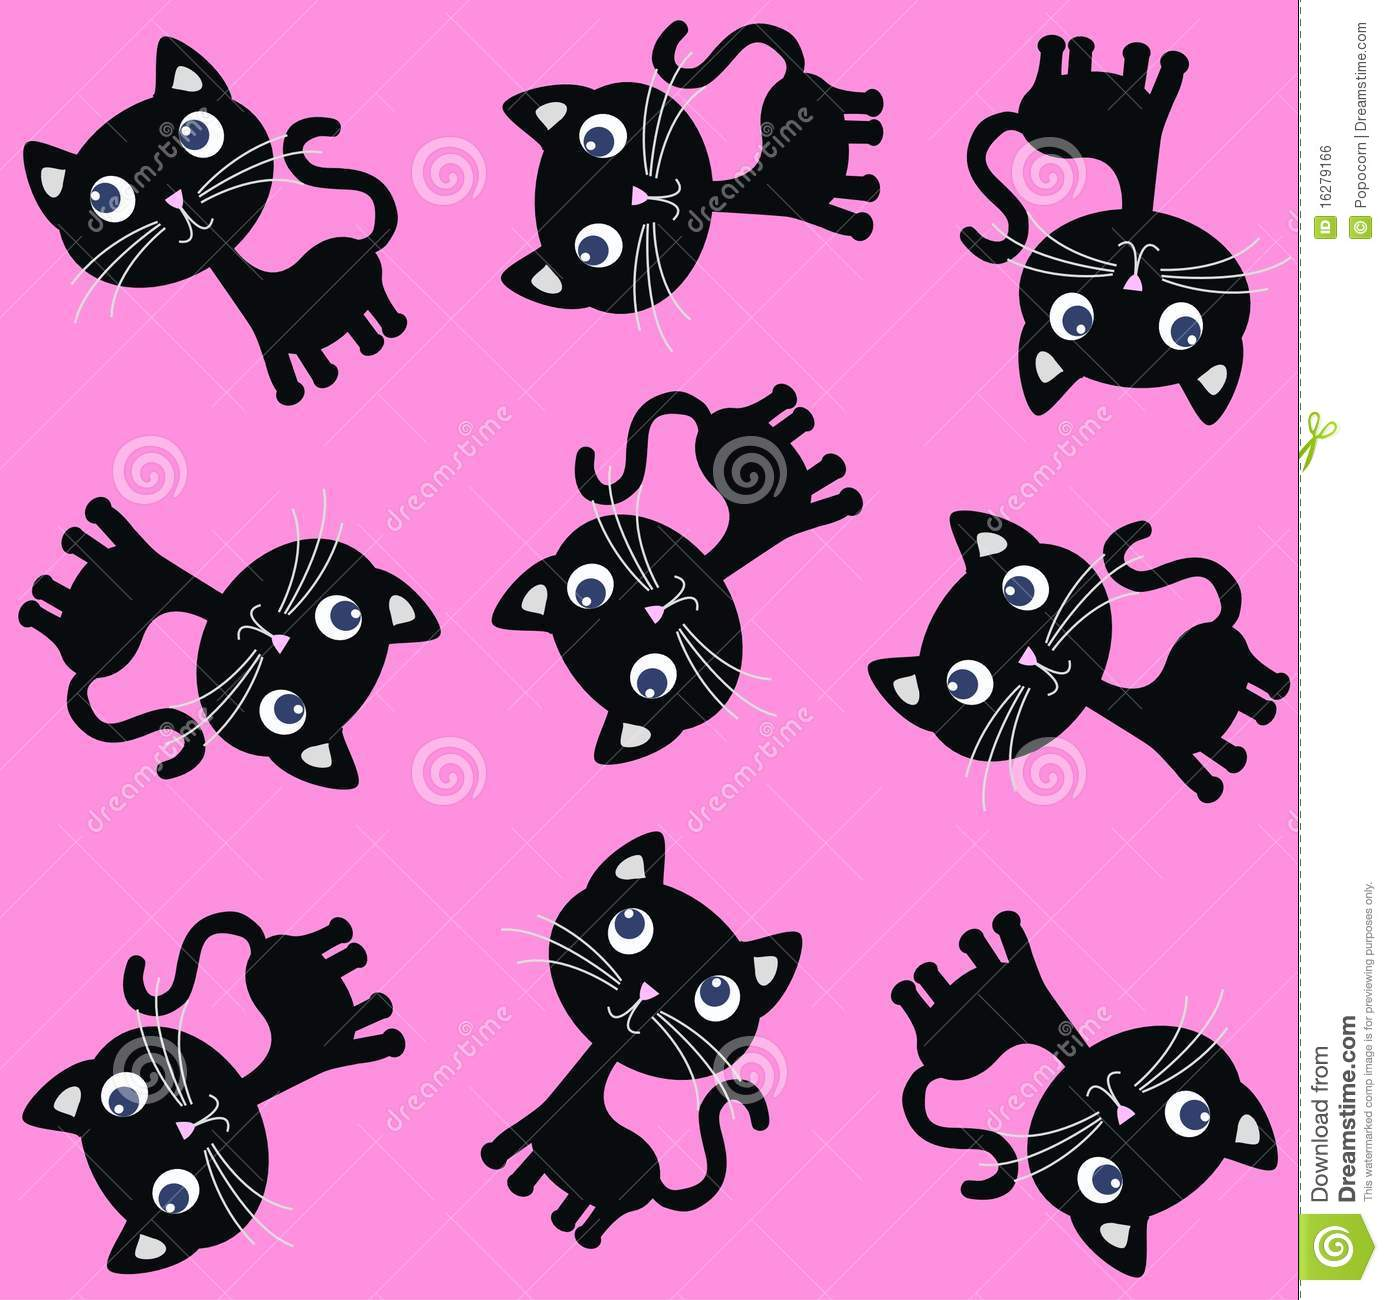 Cute Emoji Wallpapers For Girls Seamless Cat Pattern Royalty Free Stock Image Image